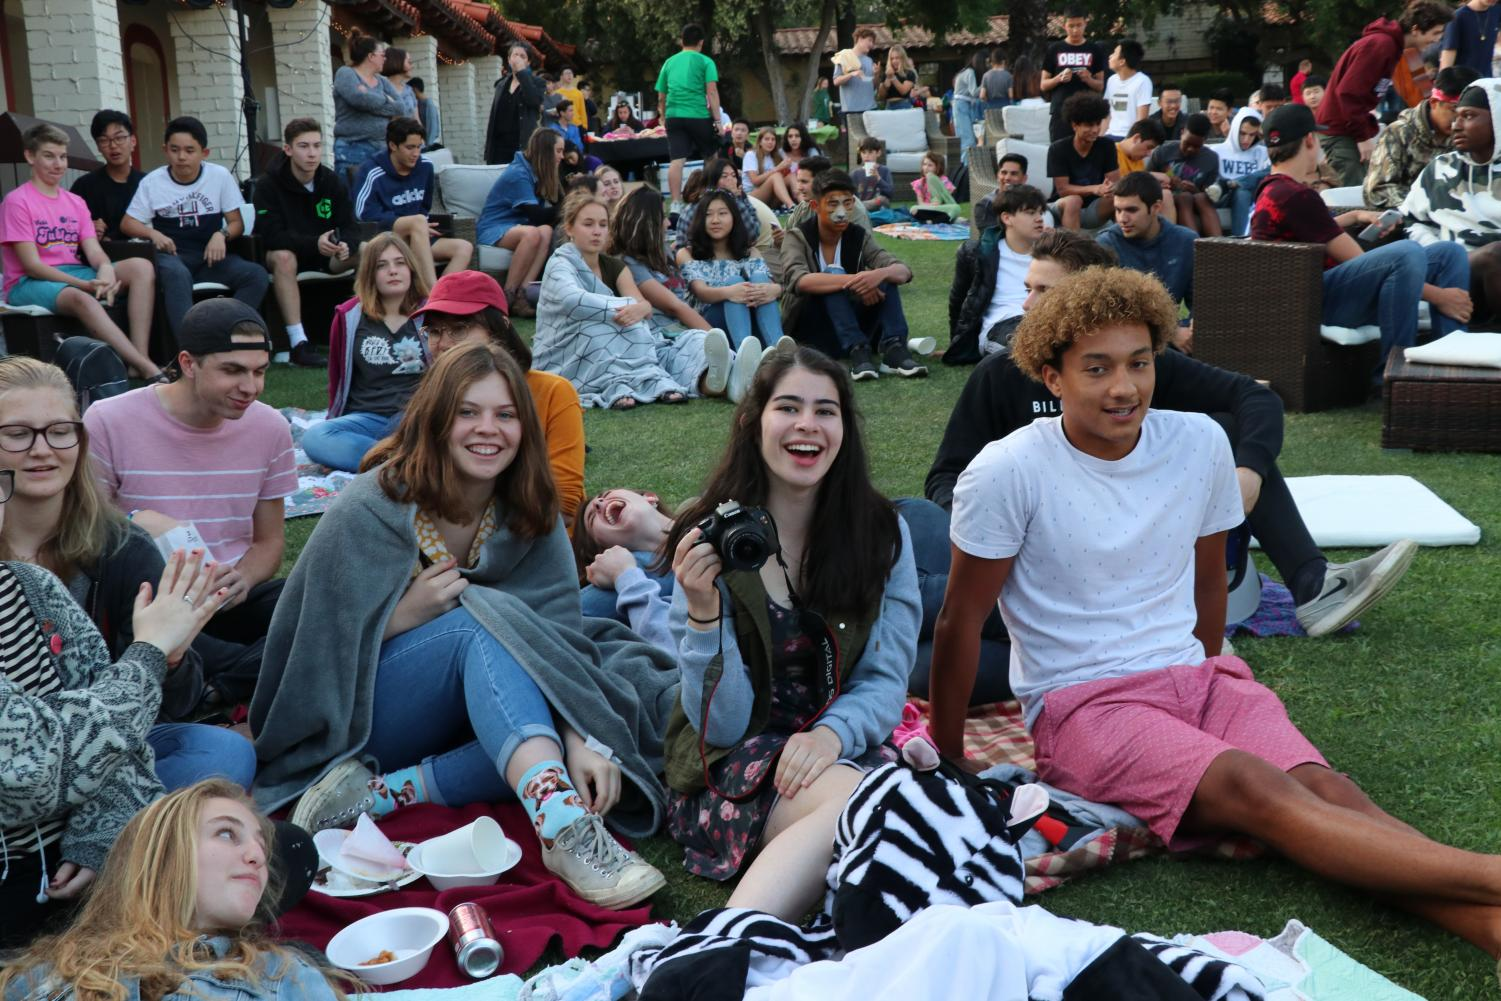 Students+enjoy+their+set-up+on+the+lawn.+